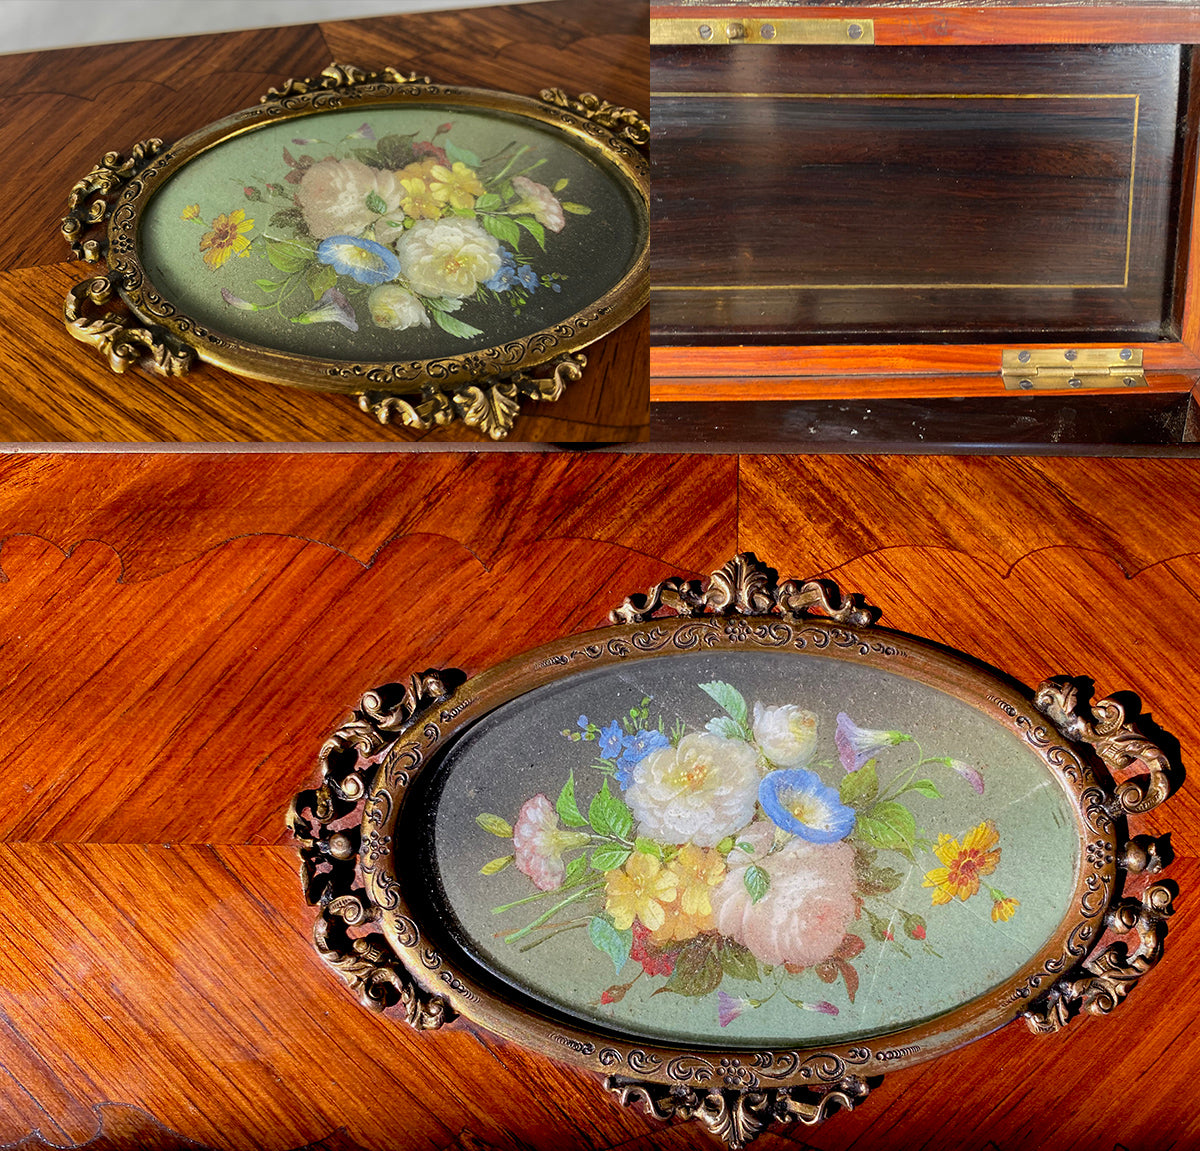 Antique French Table Box, TAHAN of Paris, Miniature Painting, Floral Bouquet, Kingwood, Napoleon III c.1850s